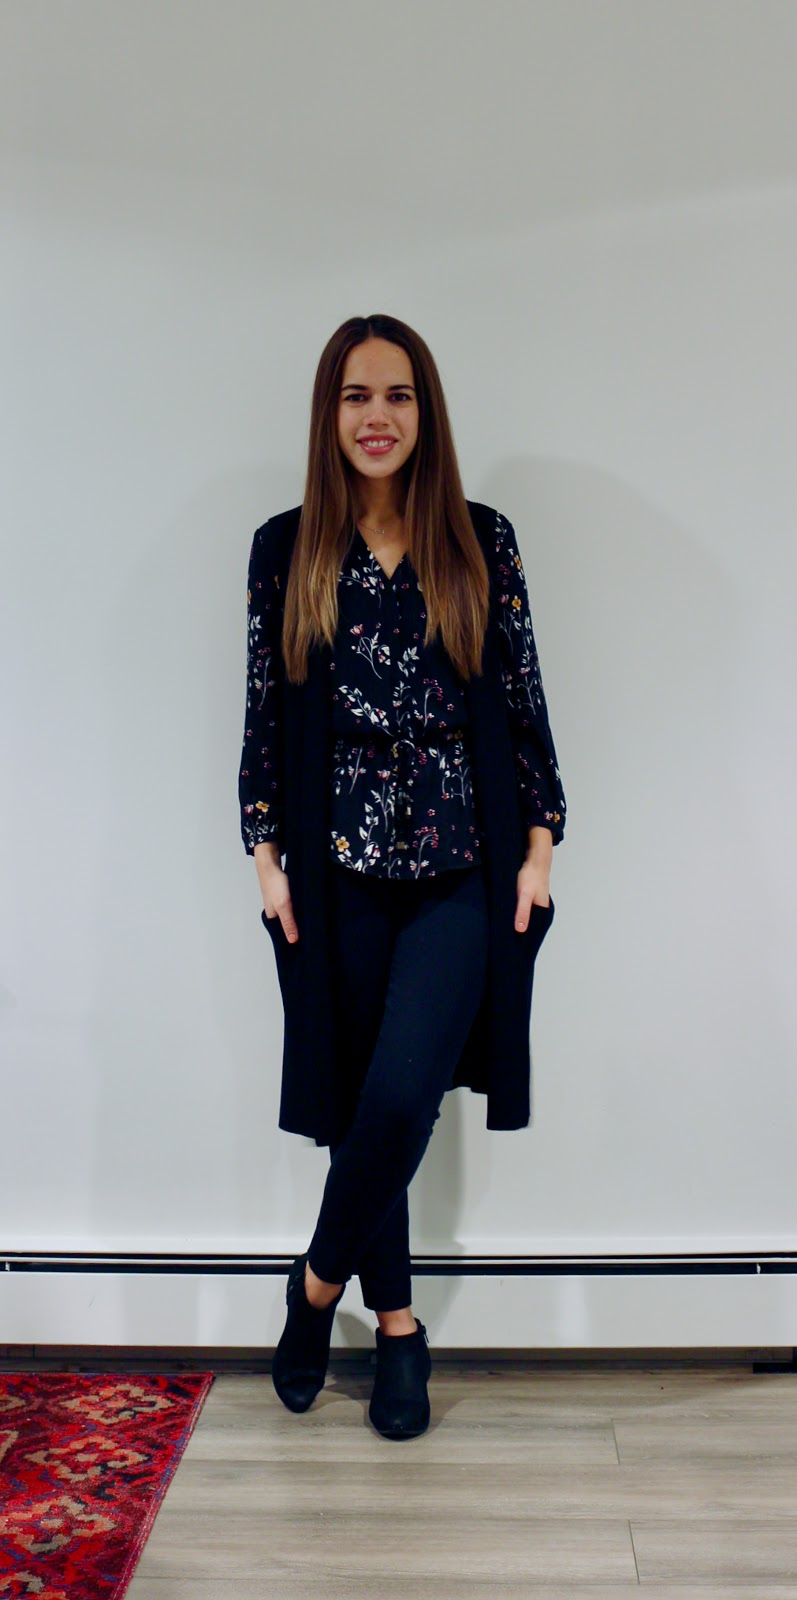 Jules in Flats - Dark Florals for Fall (Business Casual Fall Workwear on a Budget)